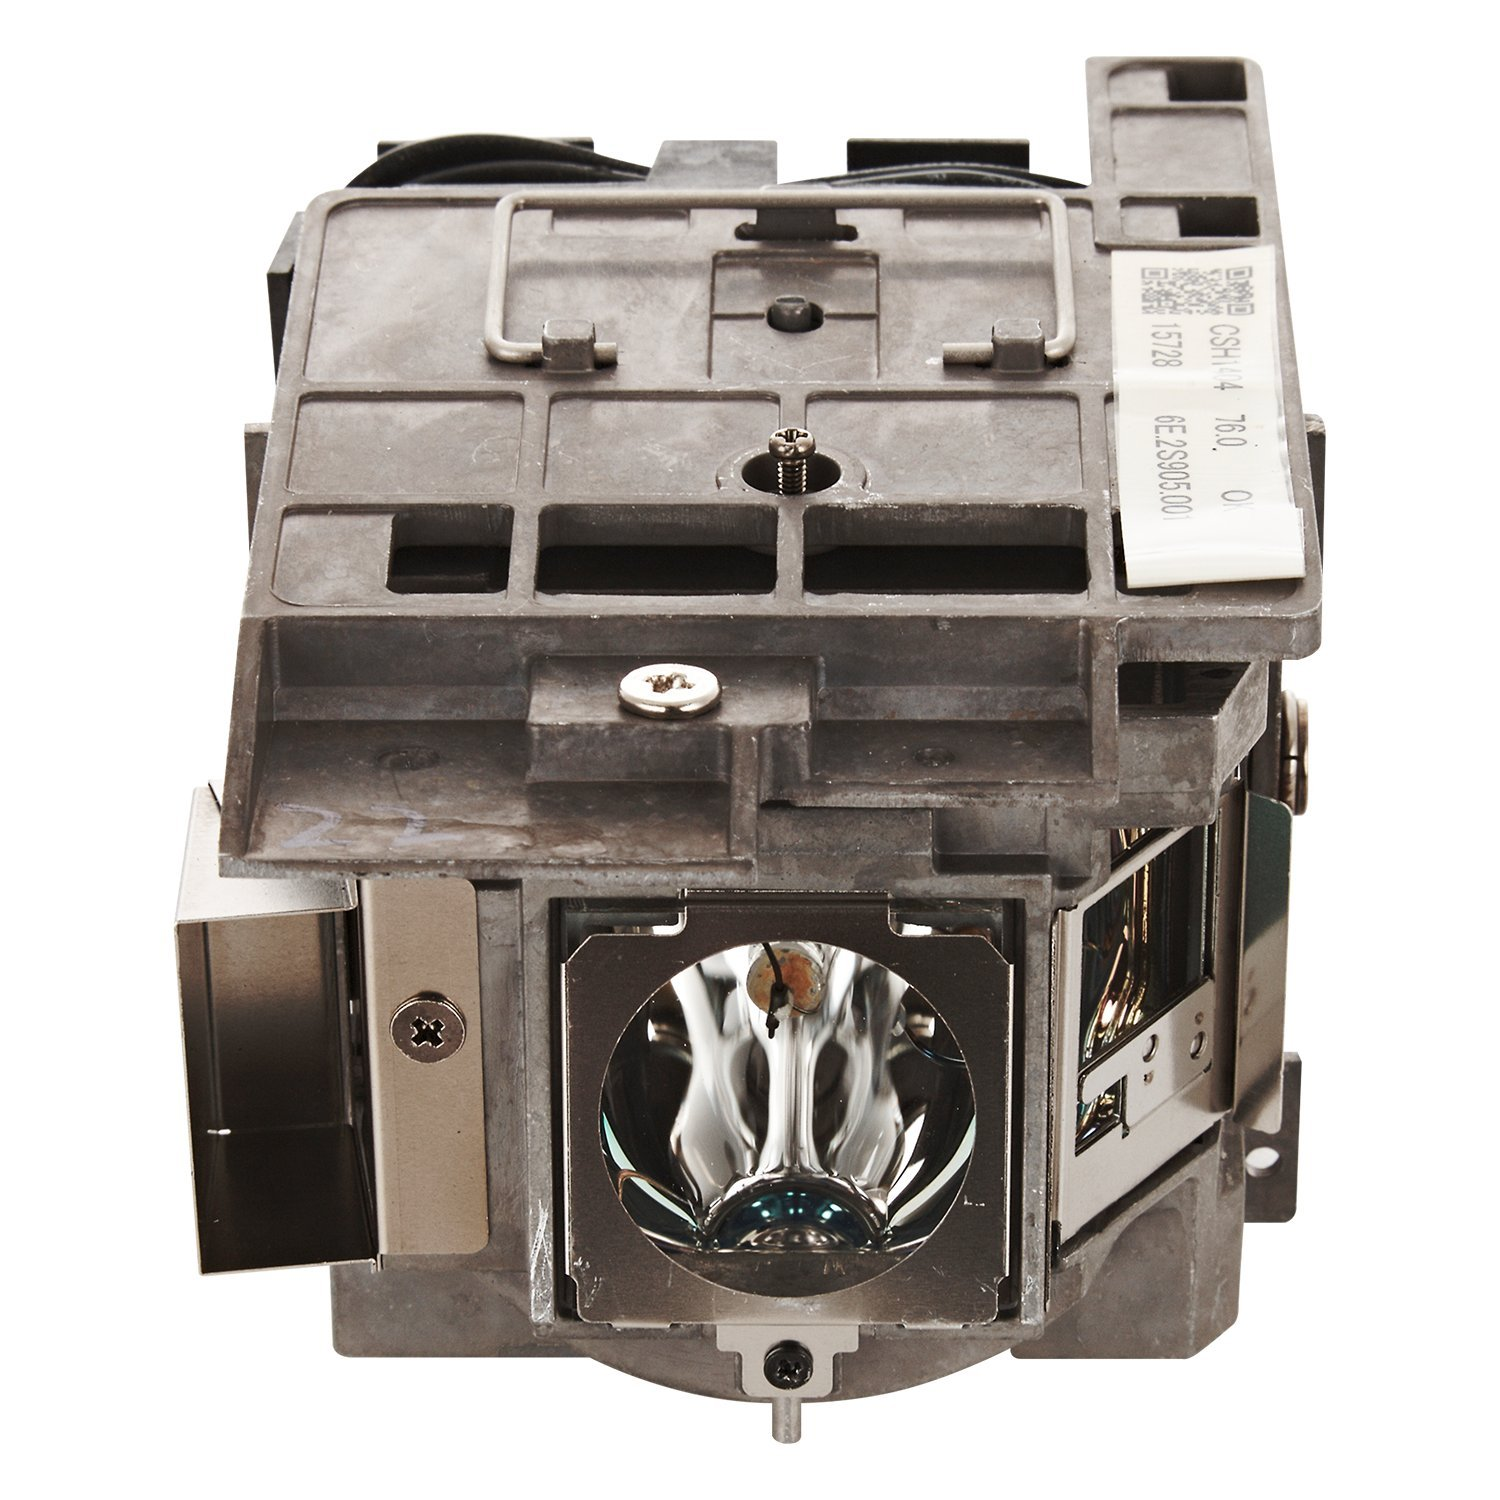 ViewSonic RLC-103 Projector Replacement Lamp for ViewSonic PRO8510L, PRO8530HDL Projectors by ViewSonic (Image #3)